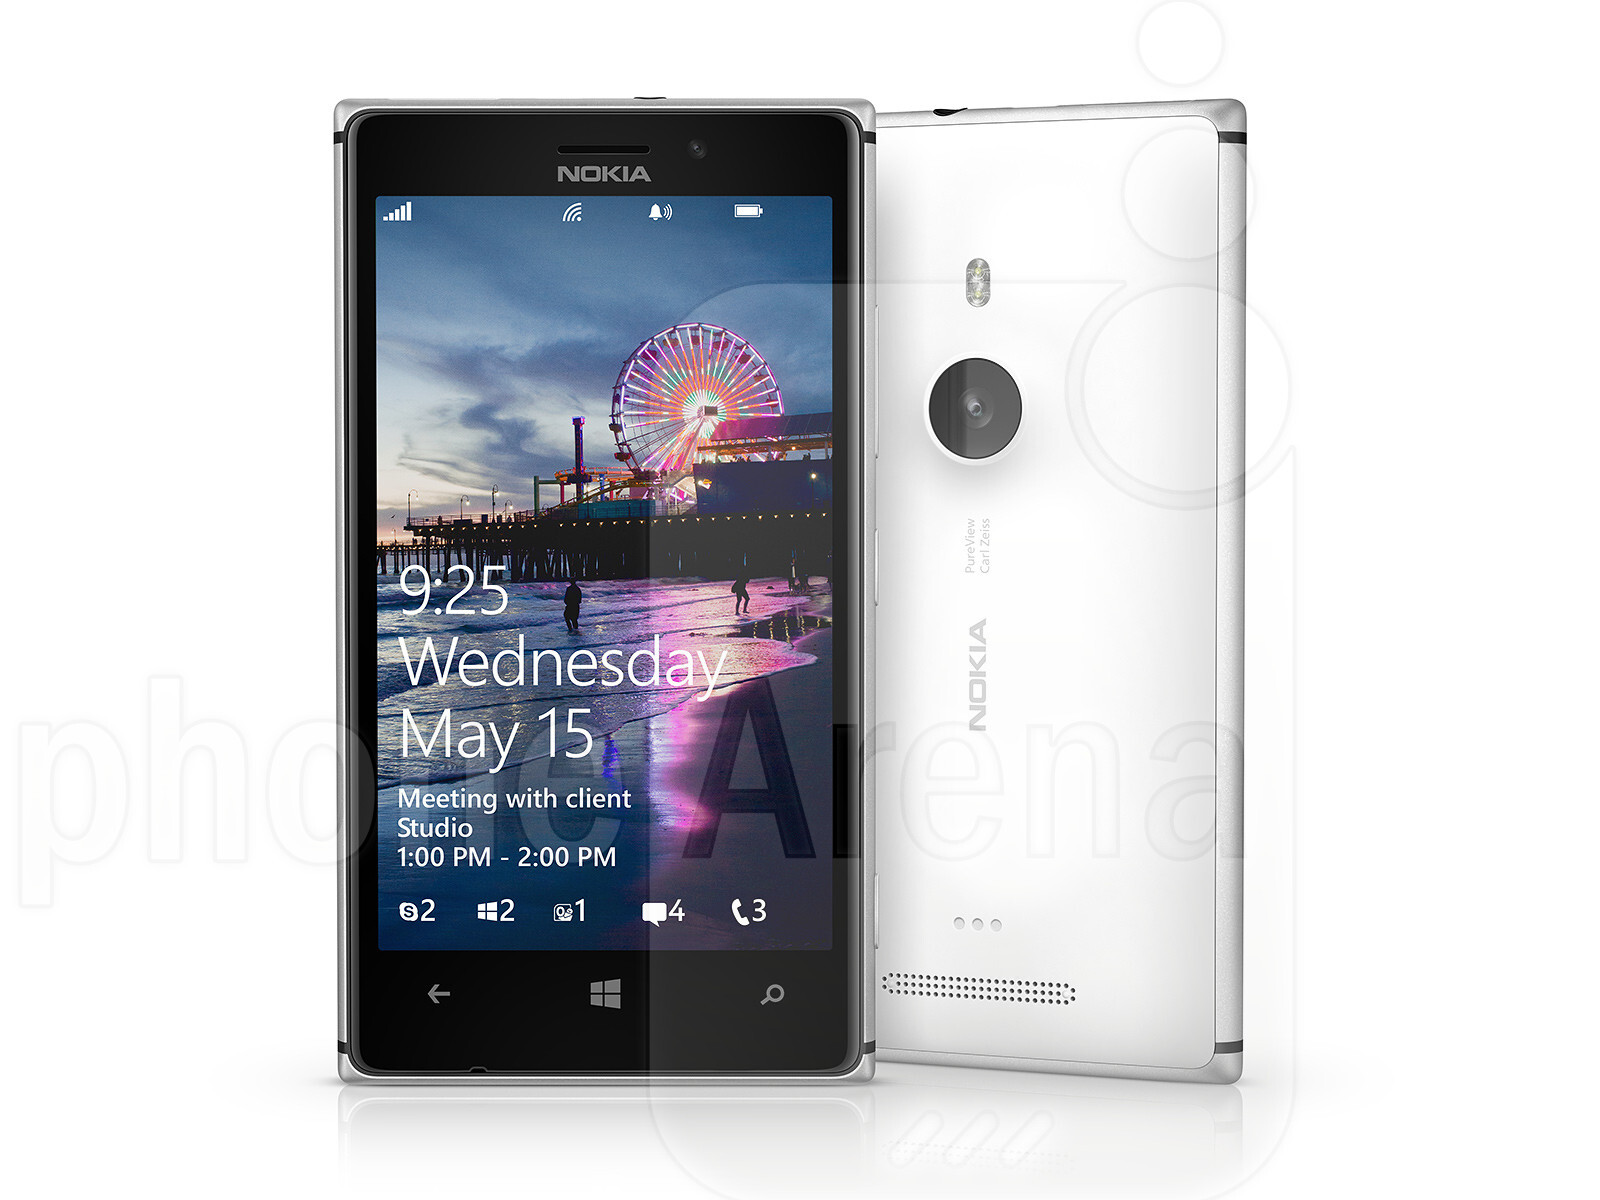 nokia lumia 925 specs. Black Bedroom Furniture Sets. Home Design Ideas